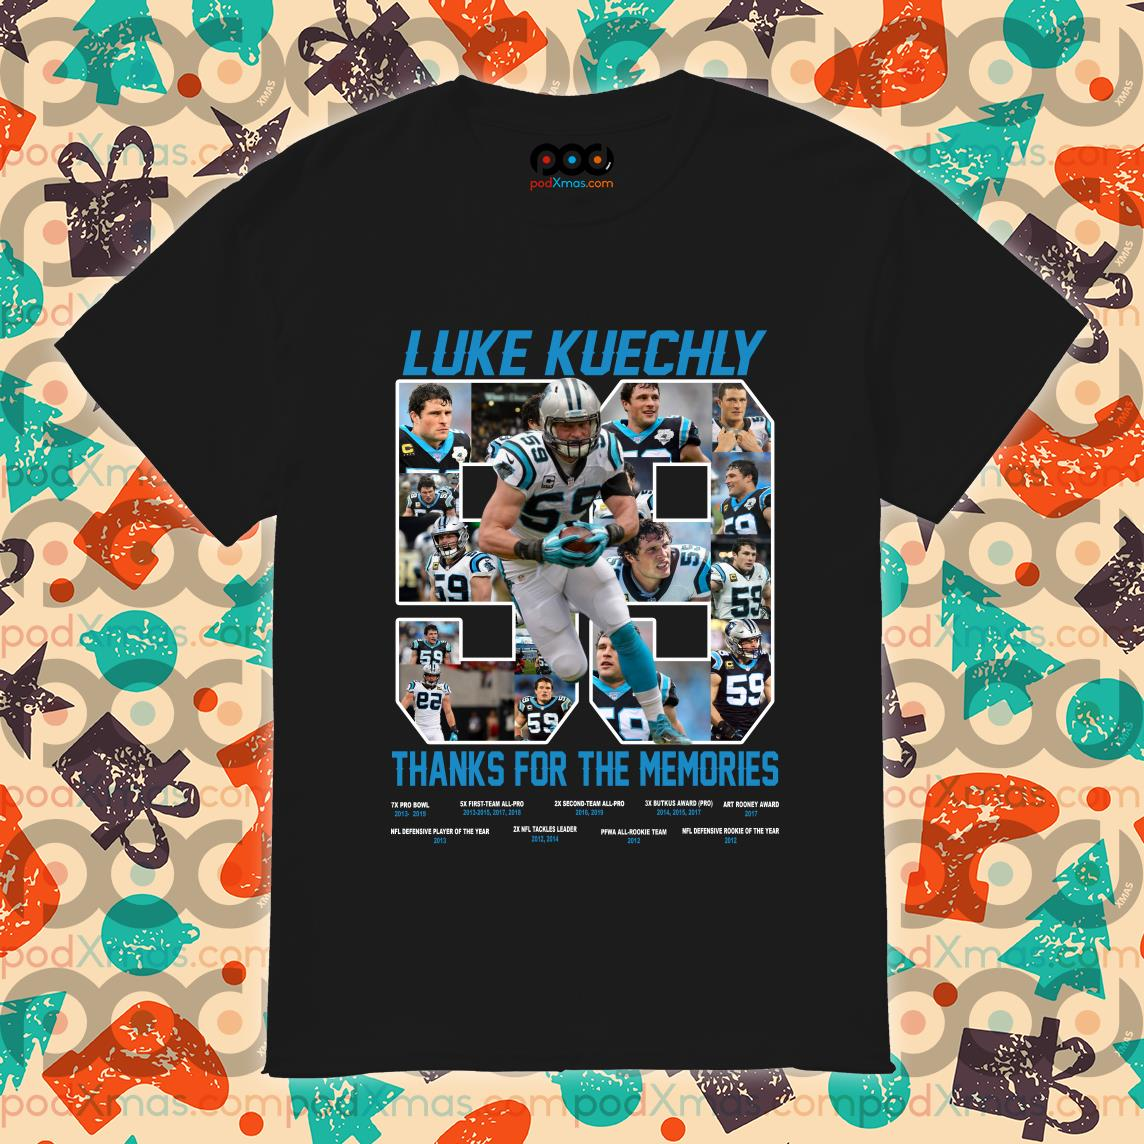 Luke Kuechly 59 thanks for the memories shirt